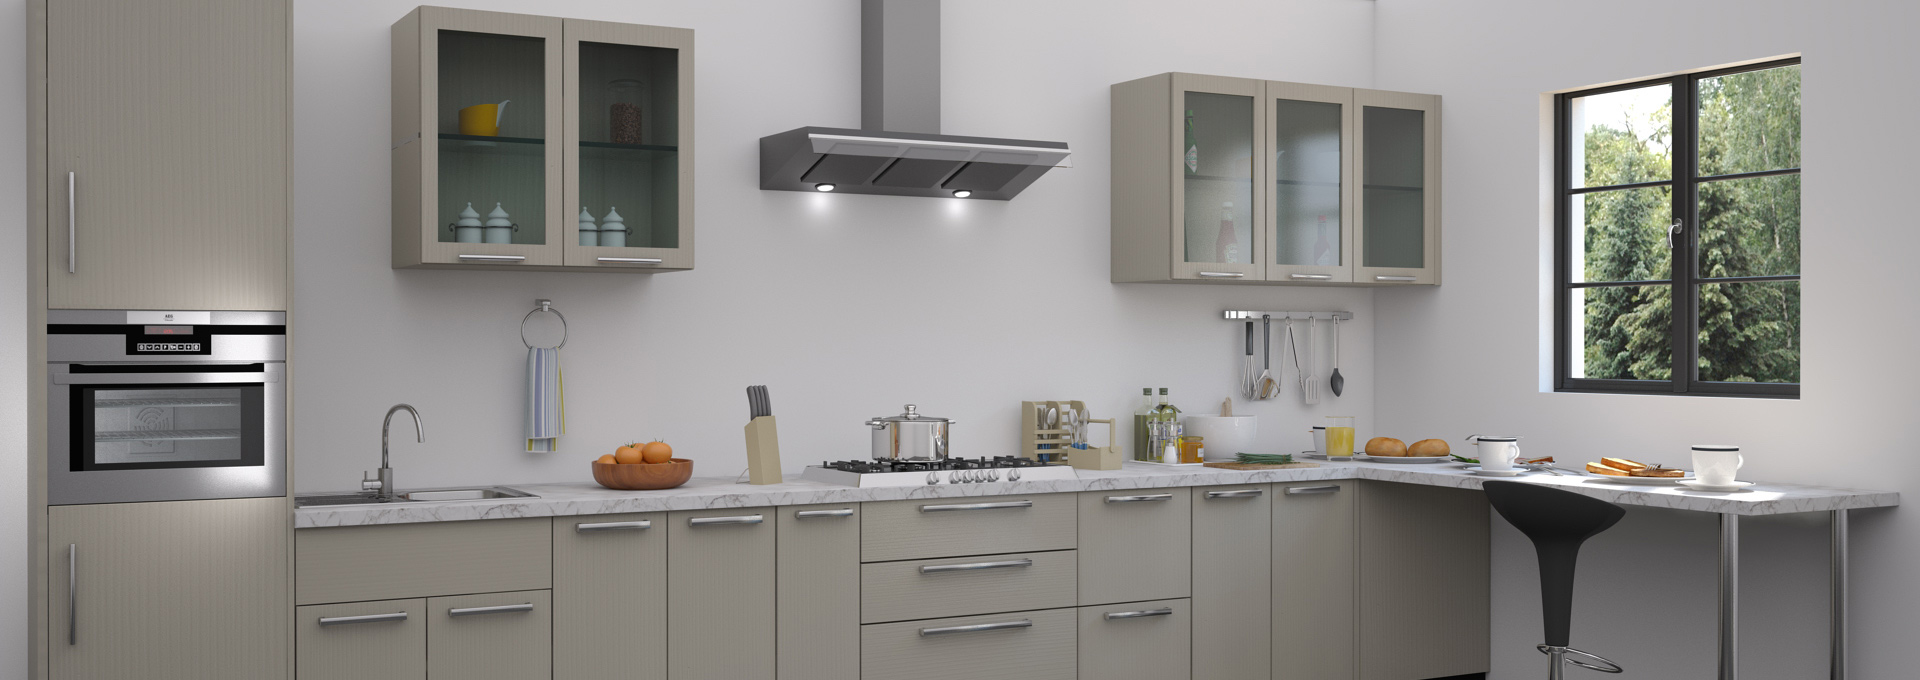 Kitchens lanarkshire local fully fitted kitchens for Kitchen ideas glasgow